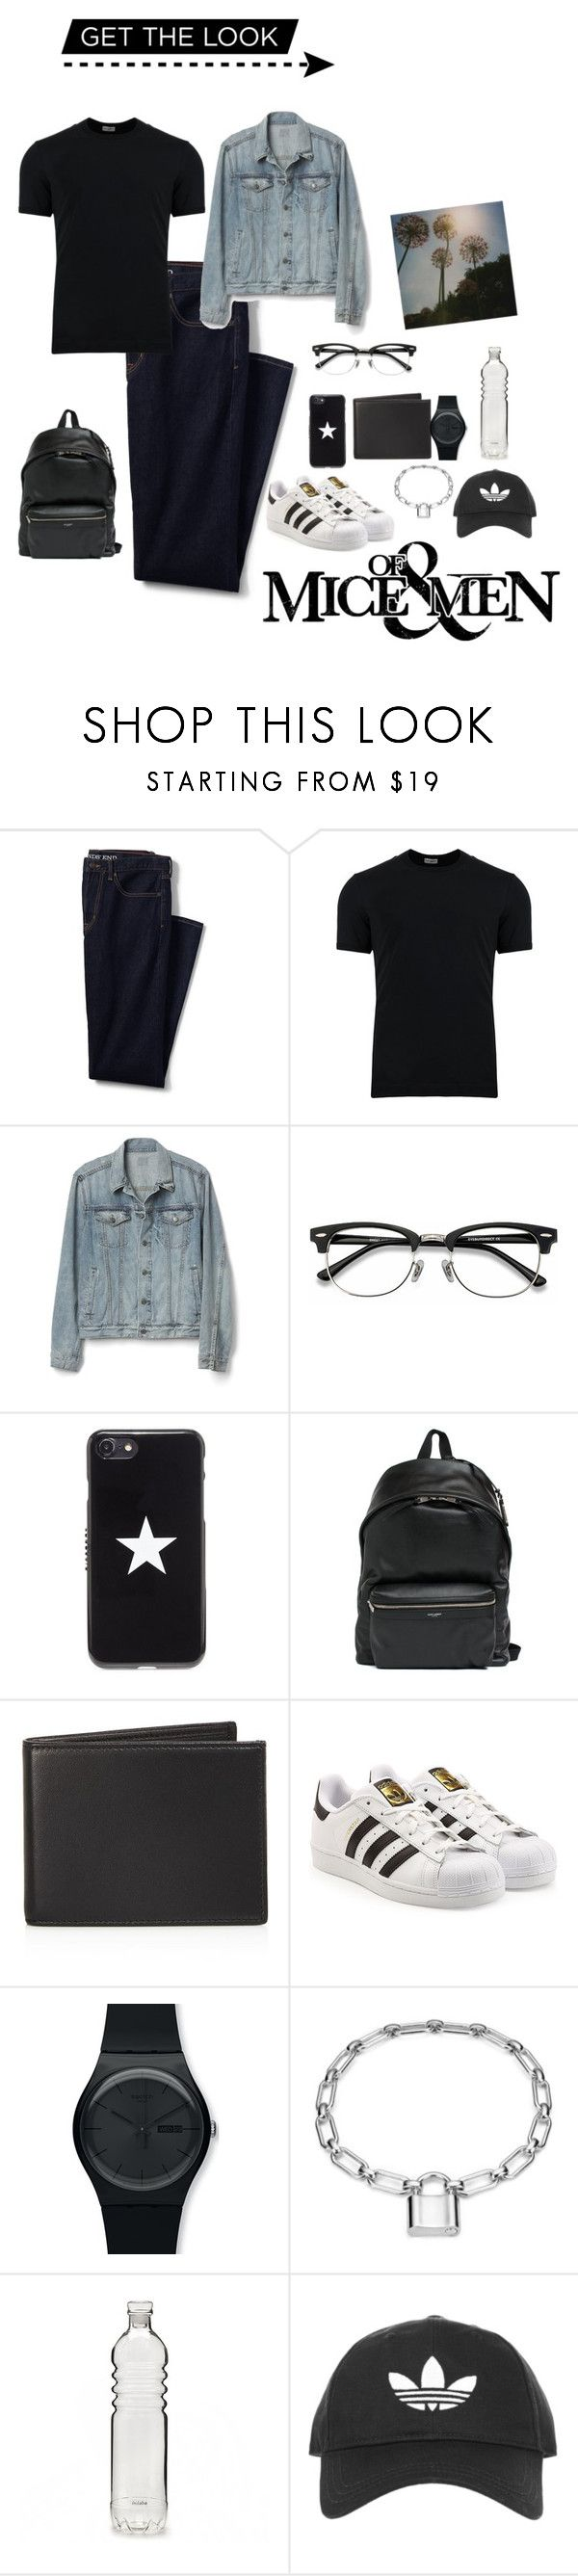 """Park"" by whygoli ❤ liked on Polyvore featuring Lands' End, Dolce&Gabbana, Gap, Ace, Givenchy, Yves Saint Laurent, The Men's Store, adidas, Swatch and Blue Nile"